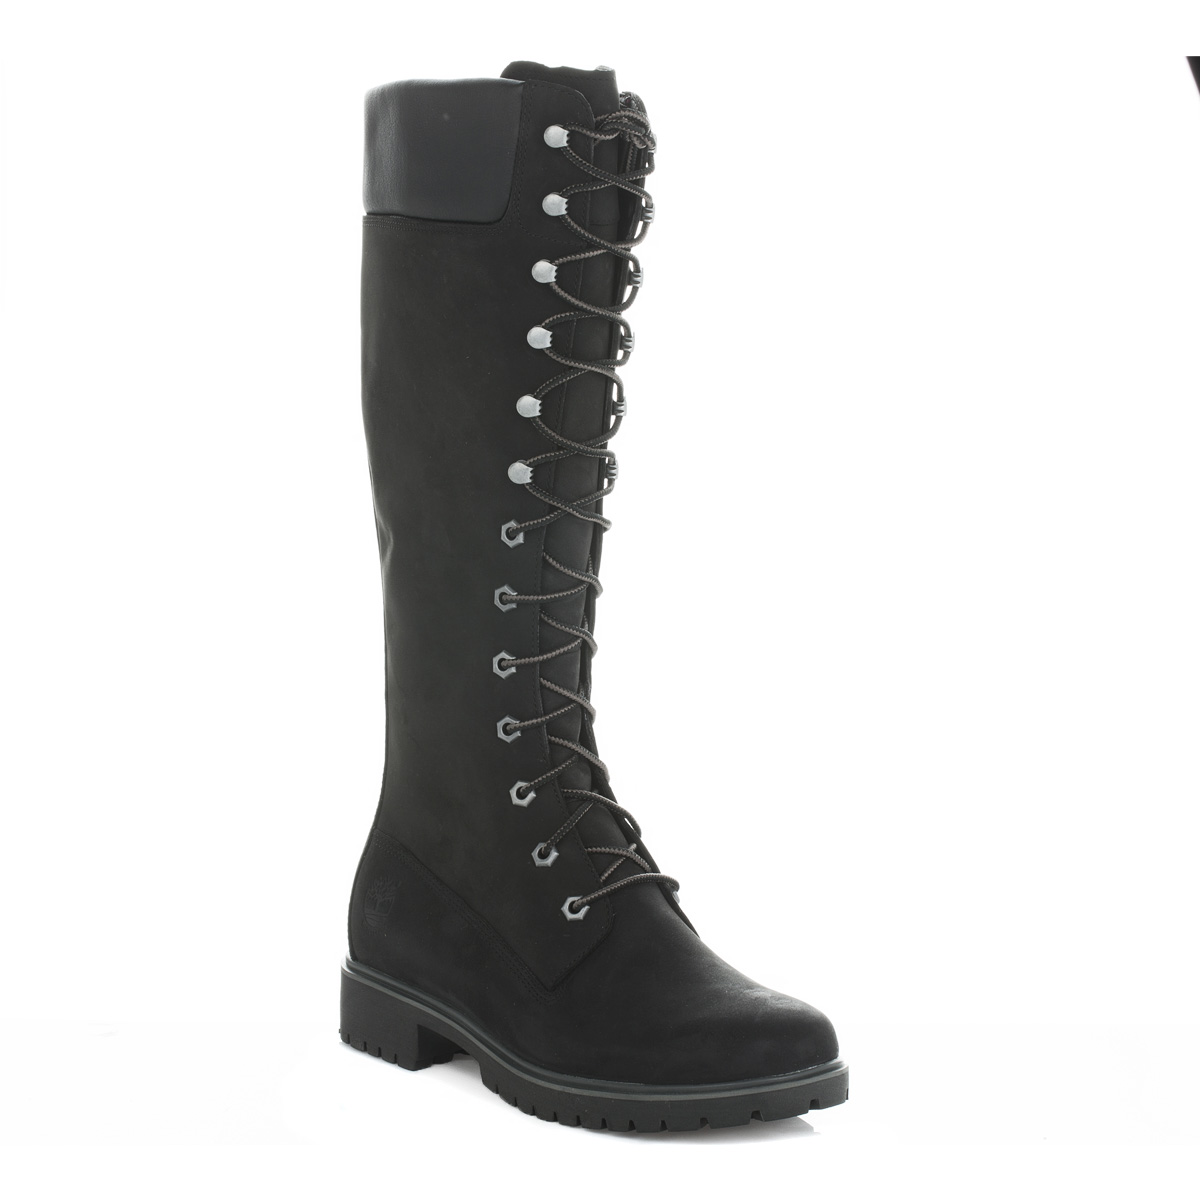 Timberland Womens Ladies Lace Up Black Premium 14 Inch Tall Boots Shoes C8167R